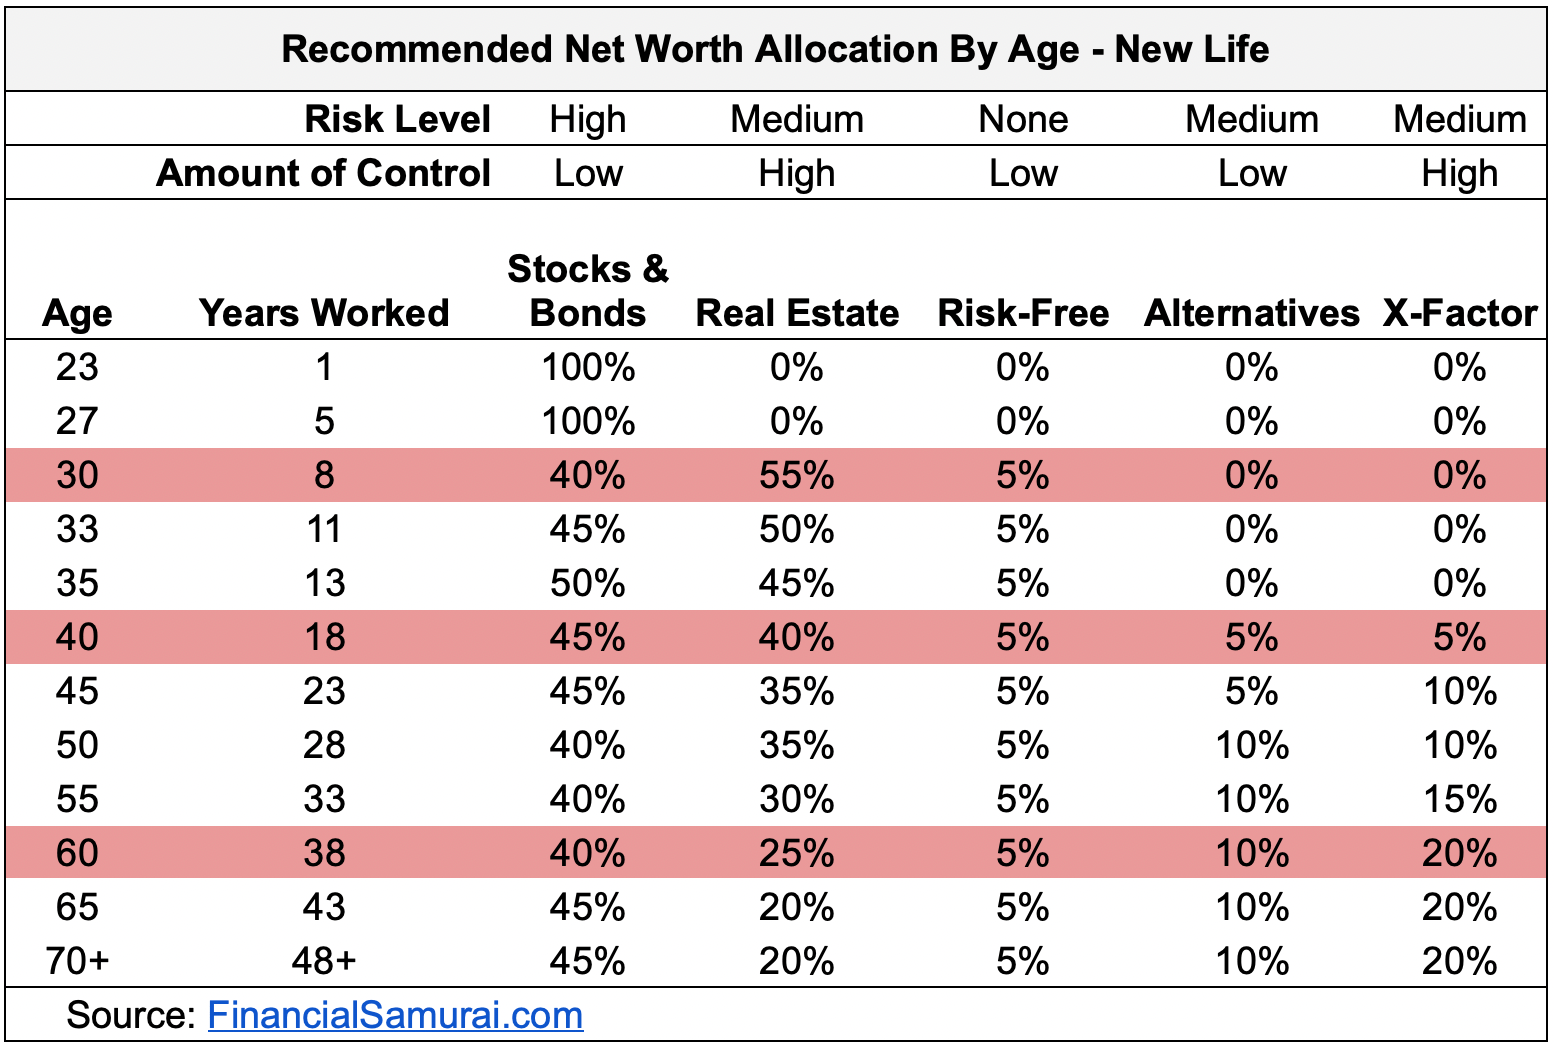 Recommended Net Worth Allocation: New Life